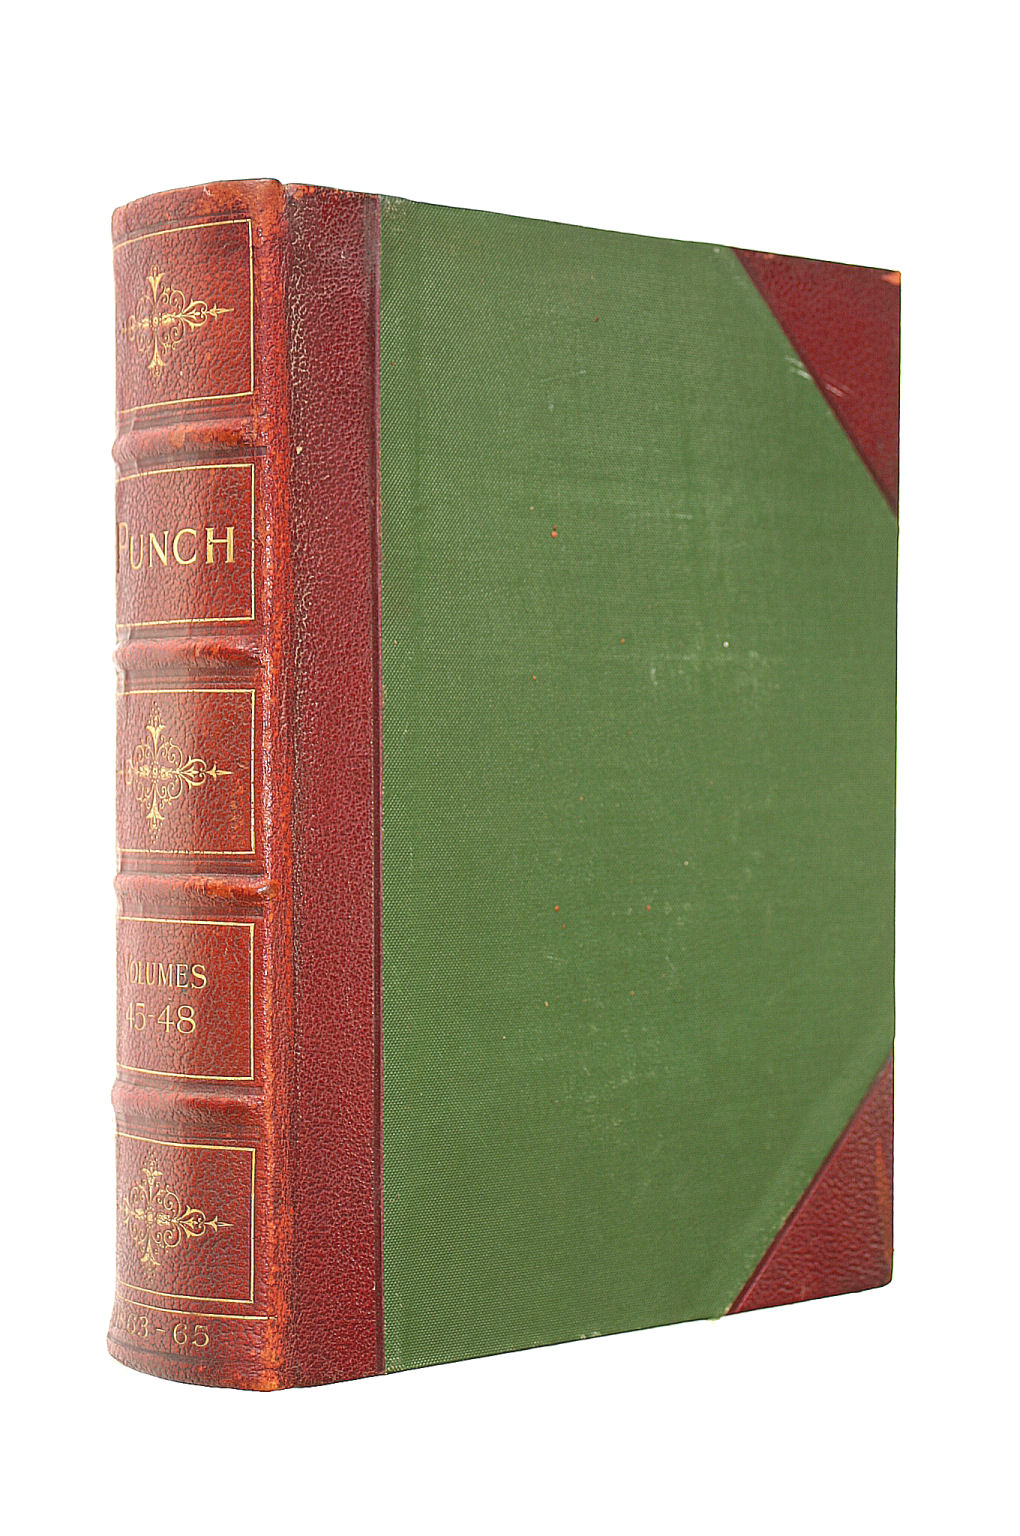 Image for Punch, Or The London Charivari, Volumes 45-48, July 1863 To June 1865, [In 1 Volume]